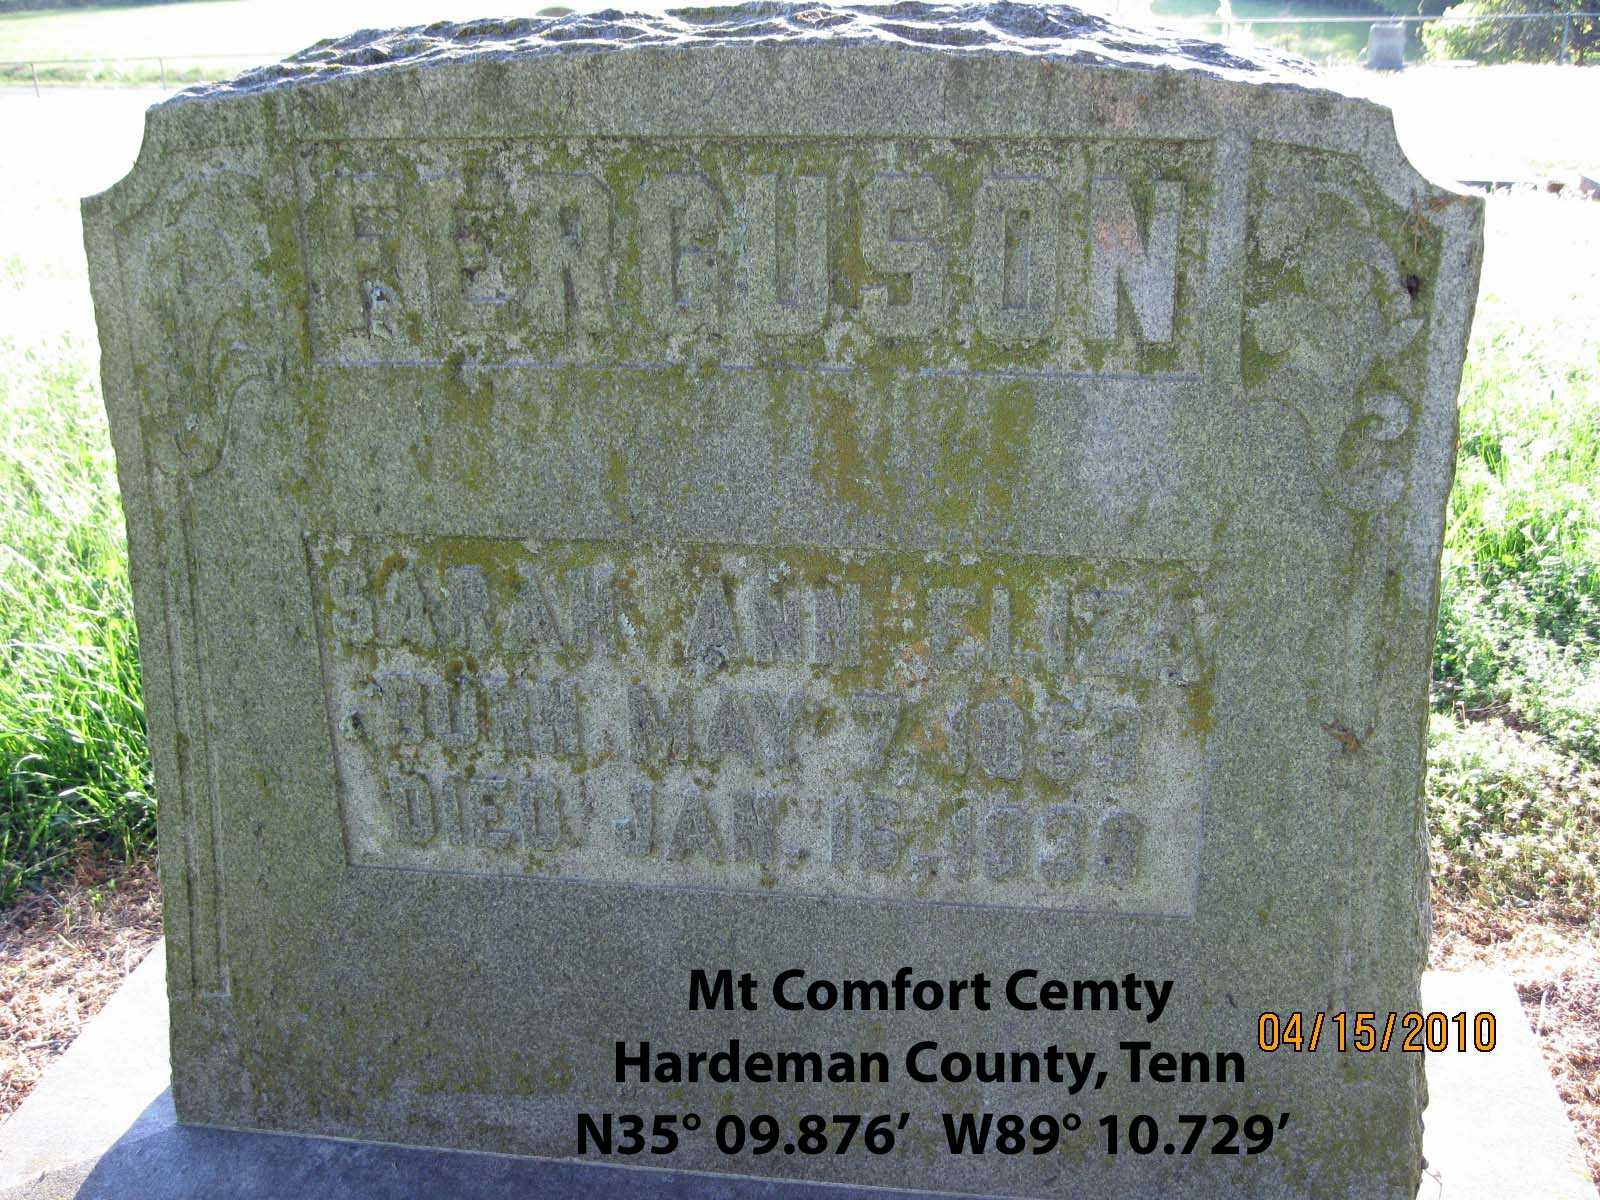 Mt Comfort Cemetery, Hardeman County, Tennessee